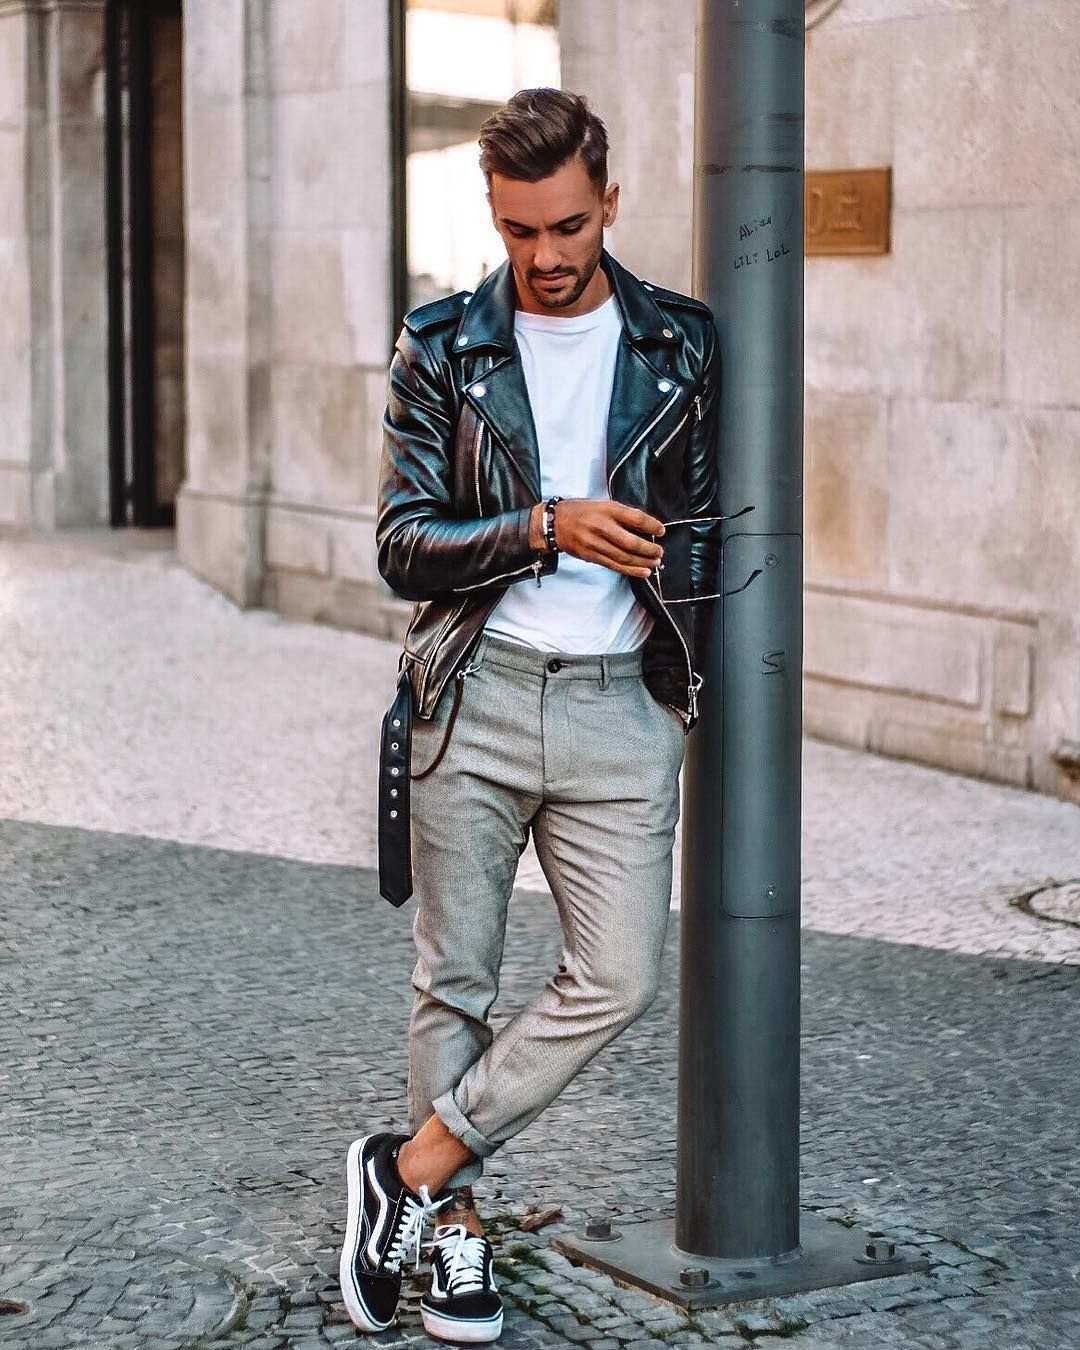 "Hugo Rodrigues on Instagram ""Daily details 🤙🏻🍁"" is part of Leather jacket street style - 2,031 Likes, 104 Comments  Hugo Rodrigues (@hugomsrodriguez) on Instagram ""Daily details 🤙🏻🍁"""